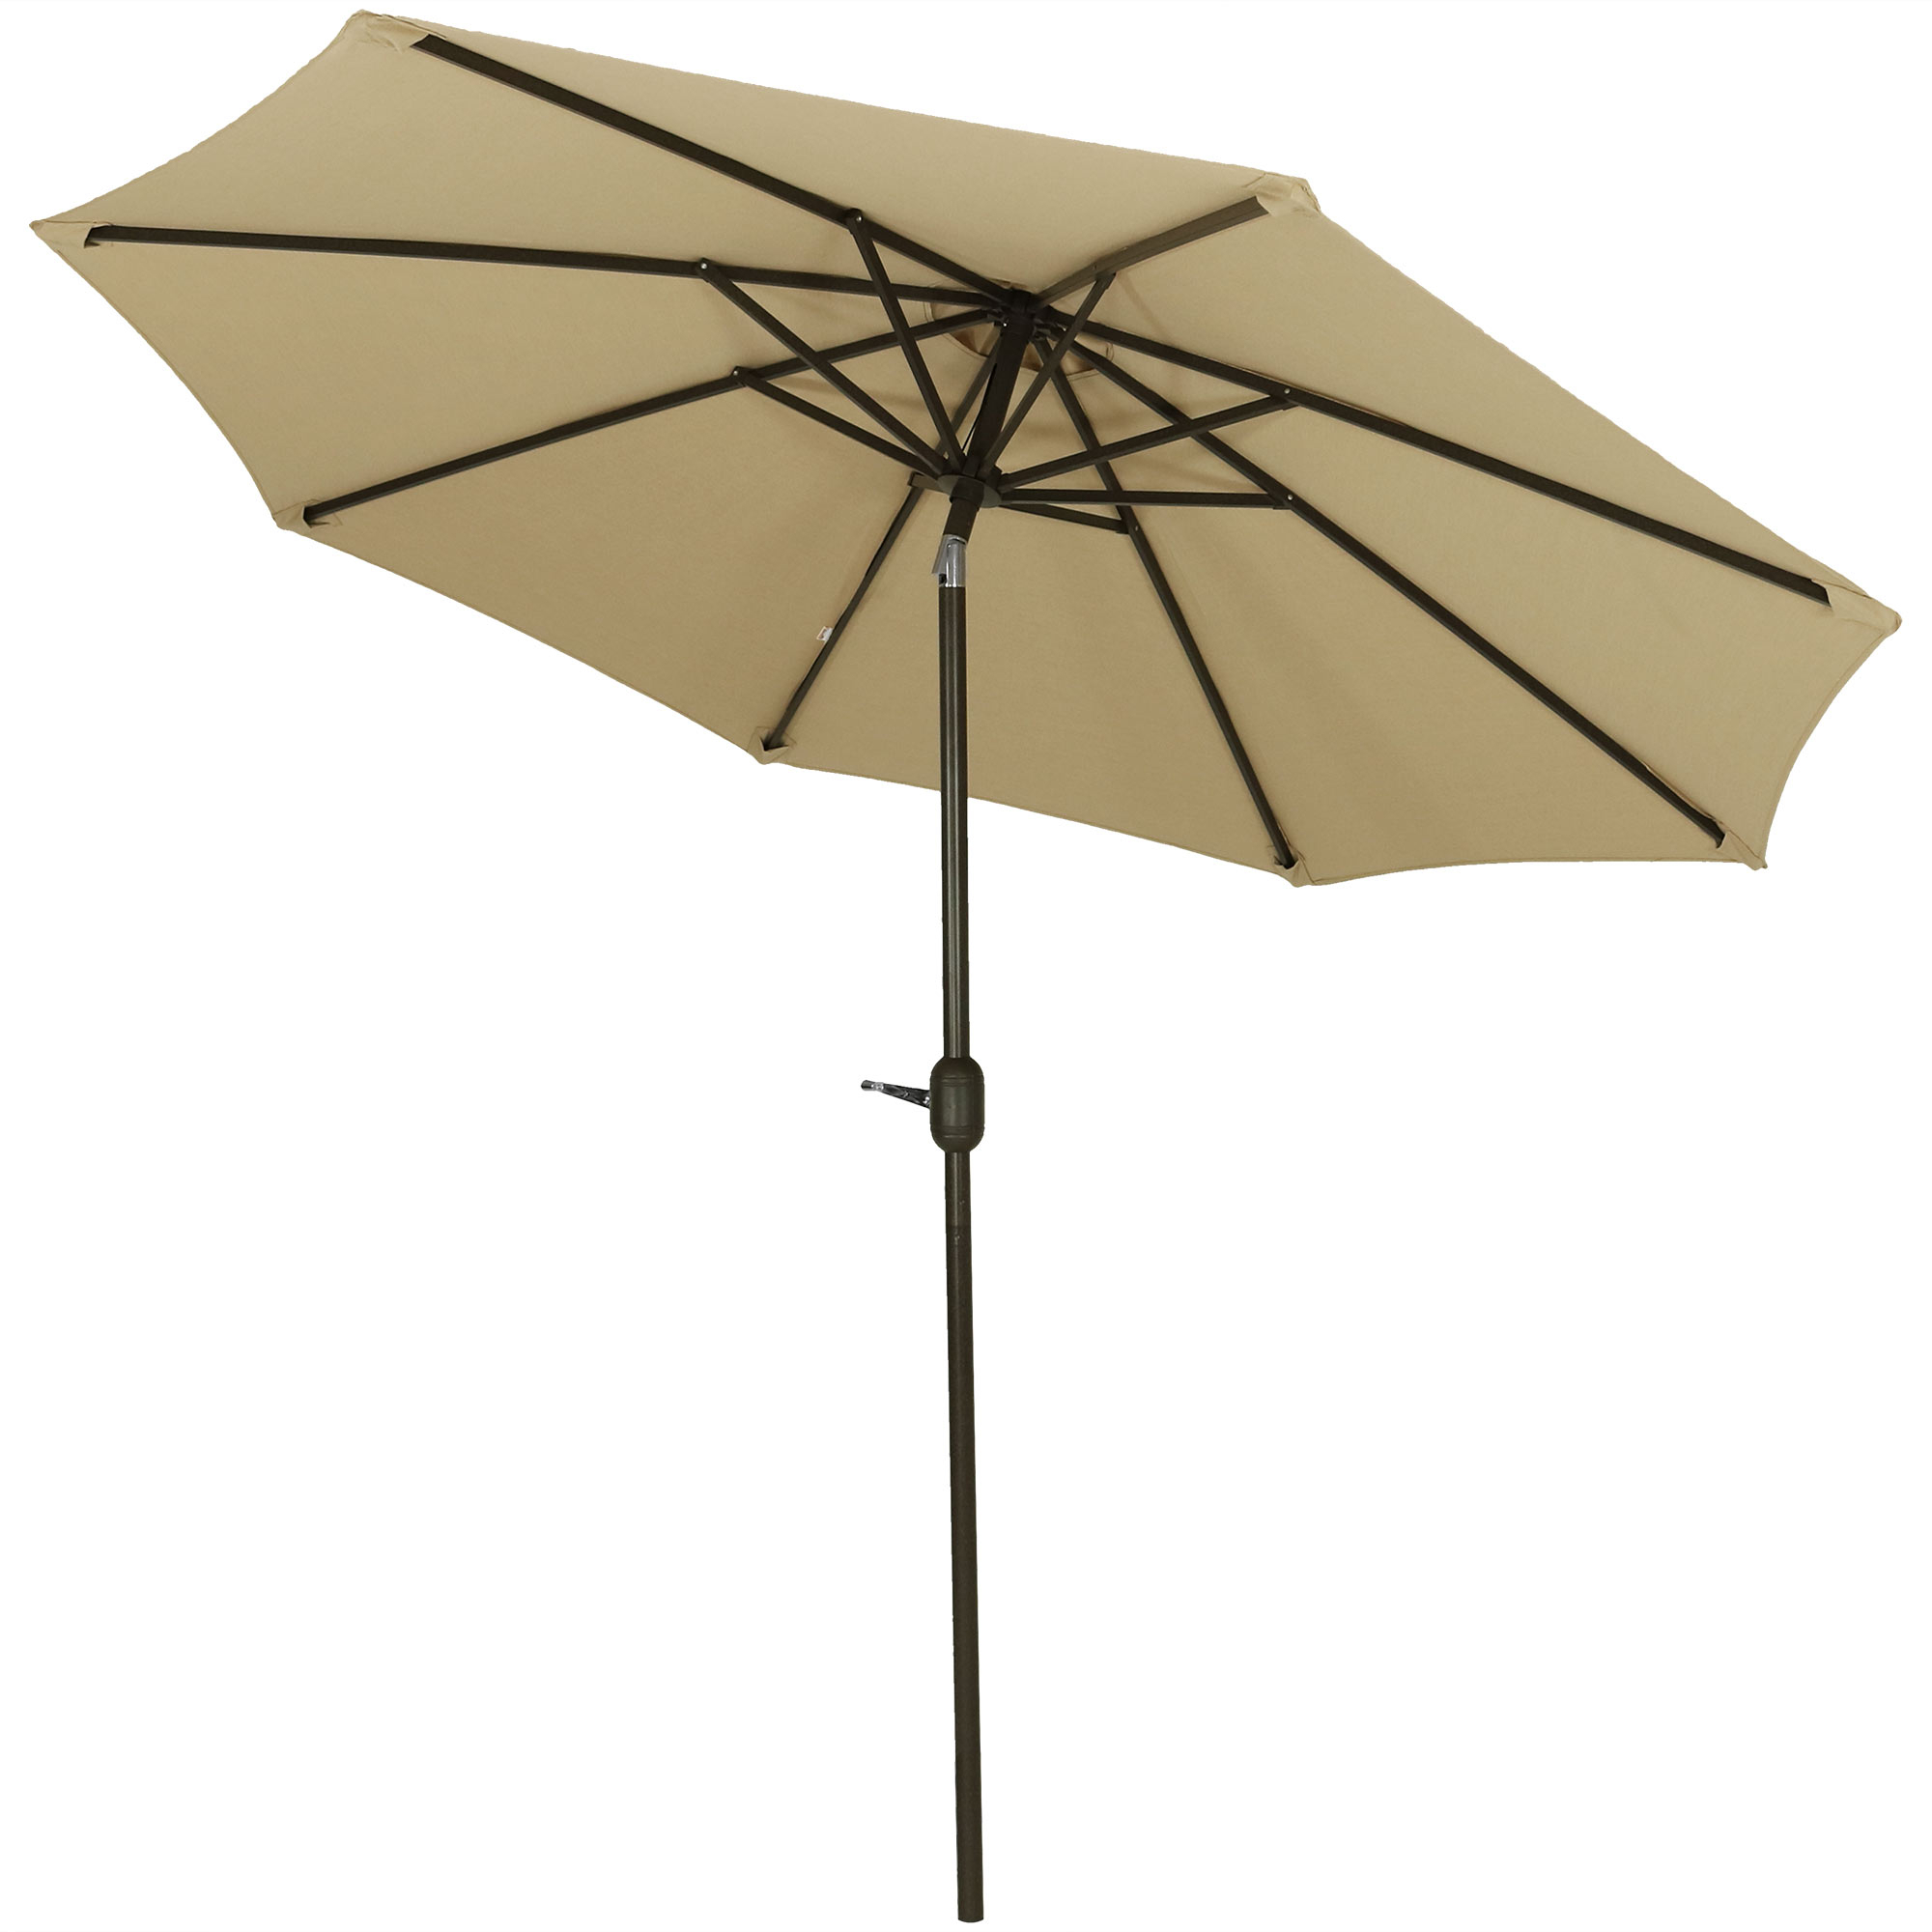 Favorite Julian Market Sunbrella Umbrellas Inside Sunnydaze Sunbrella Patio Umbrella With Auto Tilt And Crank, 9 Foot Outdoor Market Umbrella, Rust Resistant Aluminum, Sunbrella Beige (View 18 of 20)